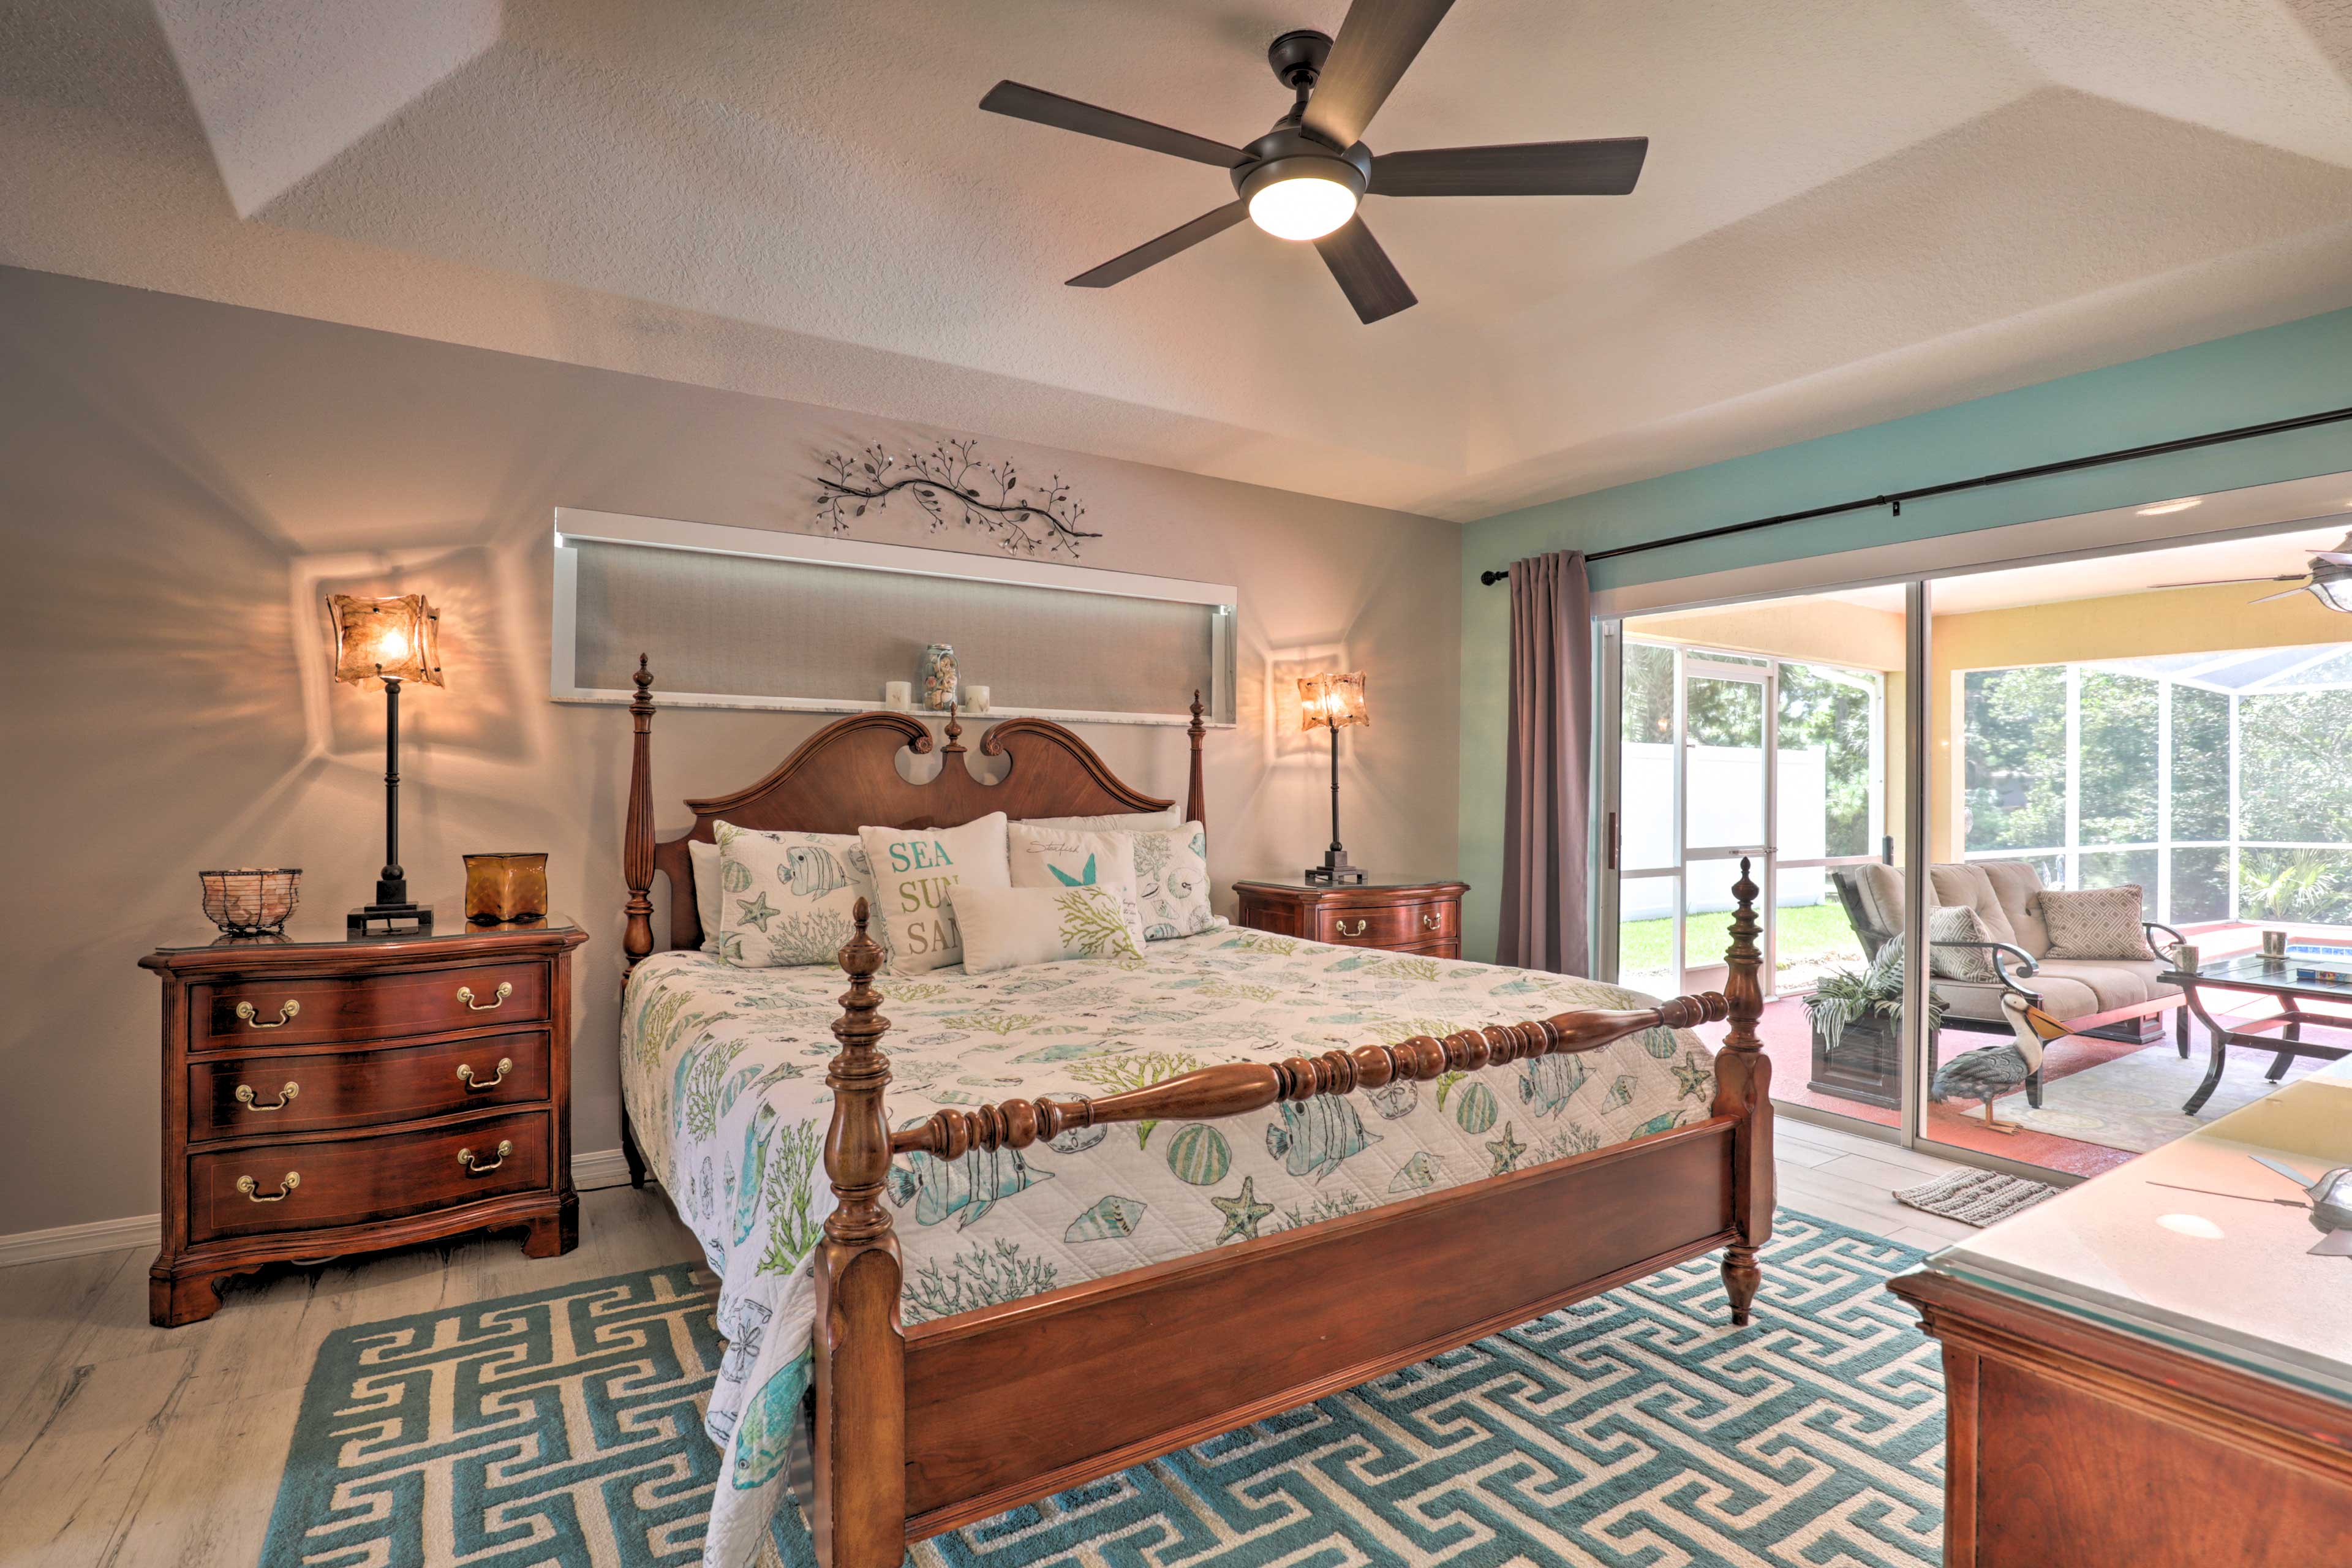 Sprawl out in the master bedroom's king-sized bed.